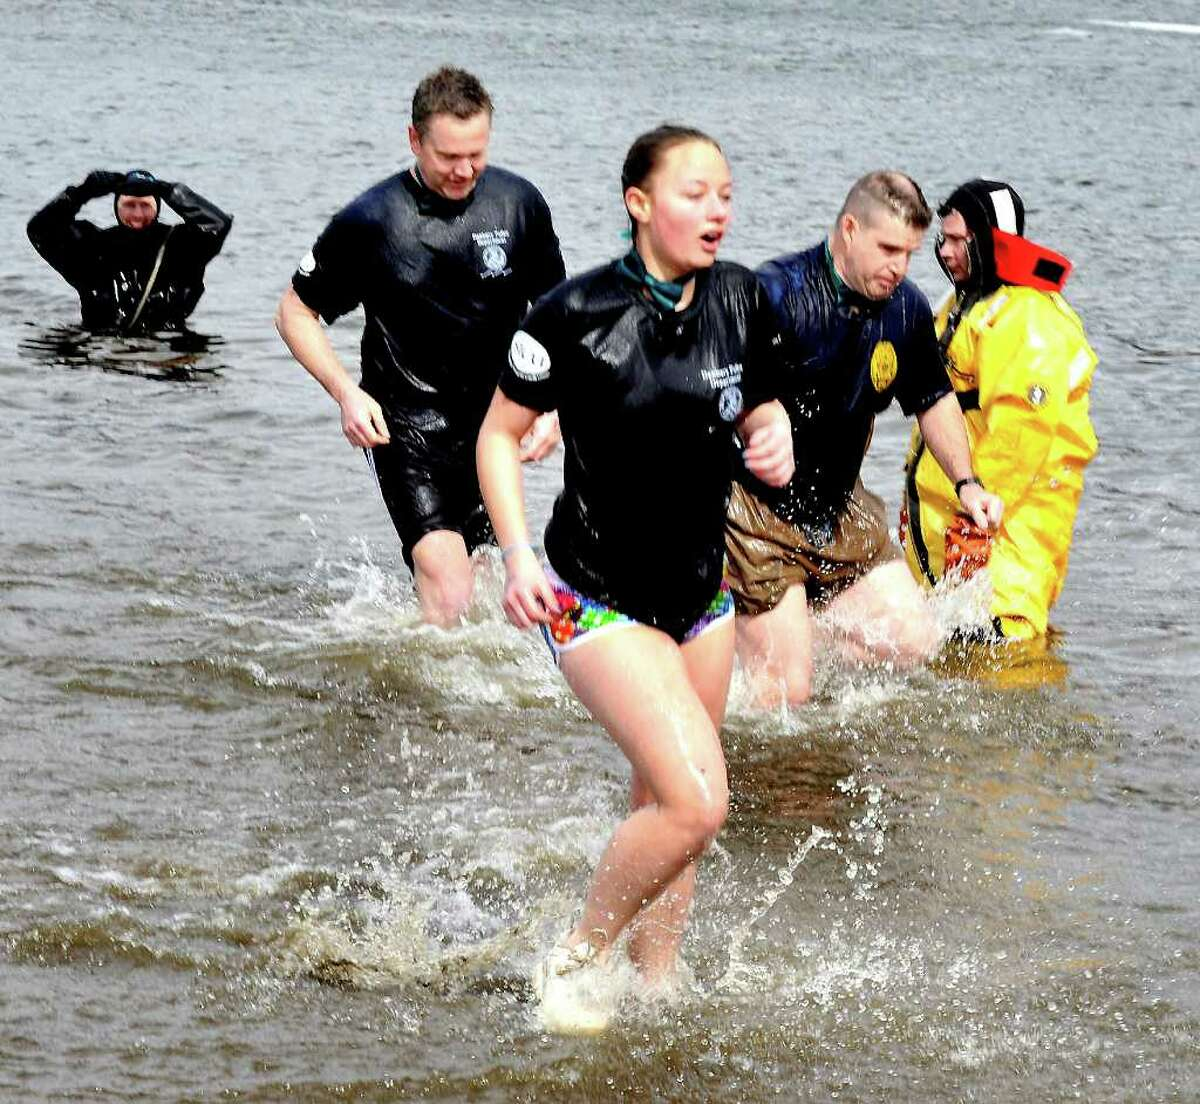 Nicole Sutor, 15, comes out of the water with the Danbury Police team, during the 2nd Annual Penguin Plunge to benefit the Special Olympics at Candlewood Town Park in Danbury, Sunday, March 13, 2011.